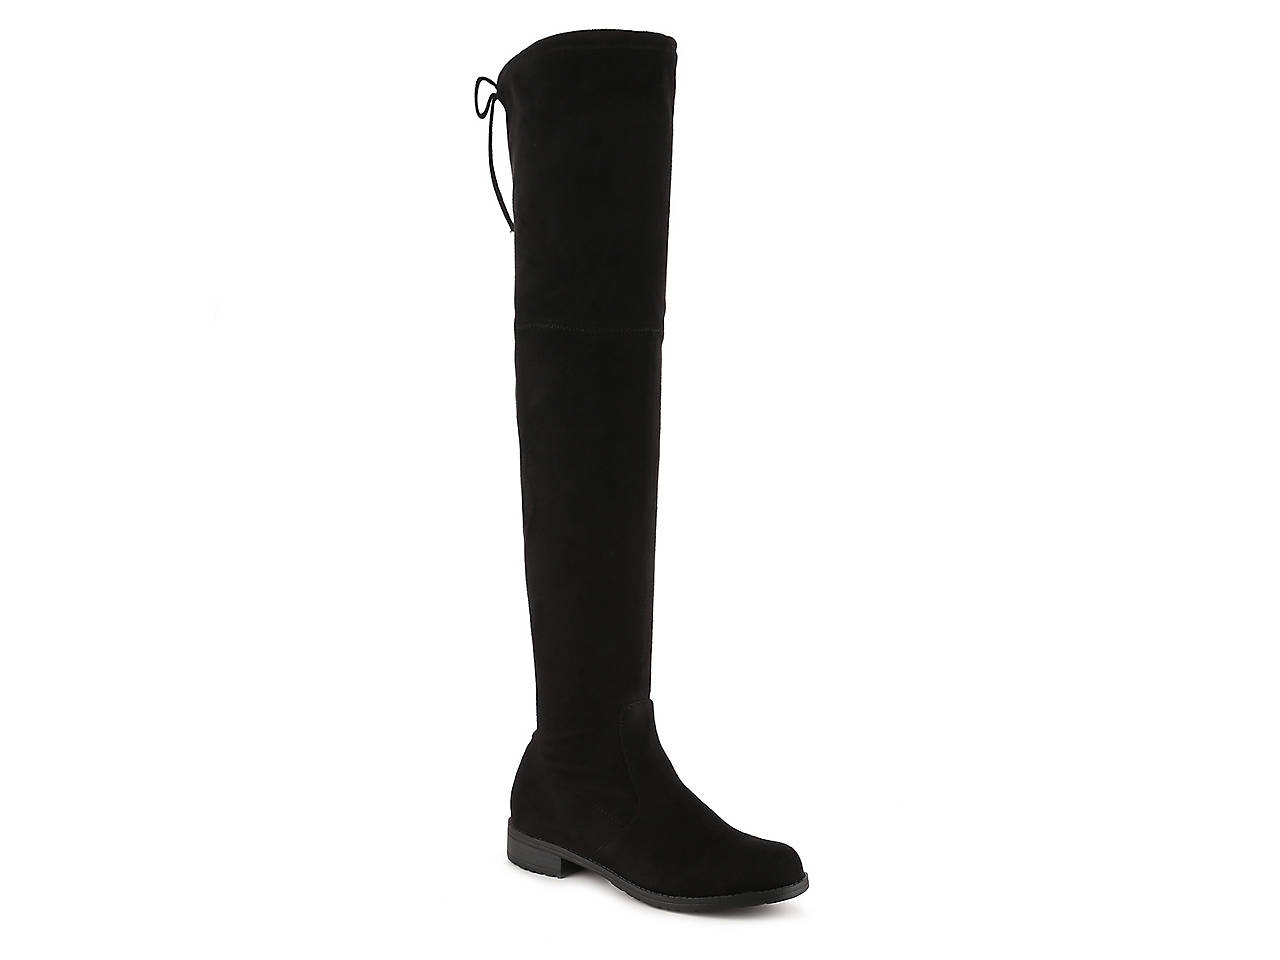 46bf3448a94 Unisa Careana Over The Knee Boot Women s Shoes